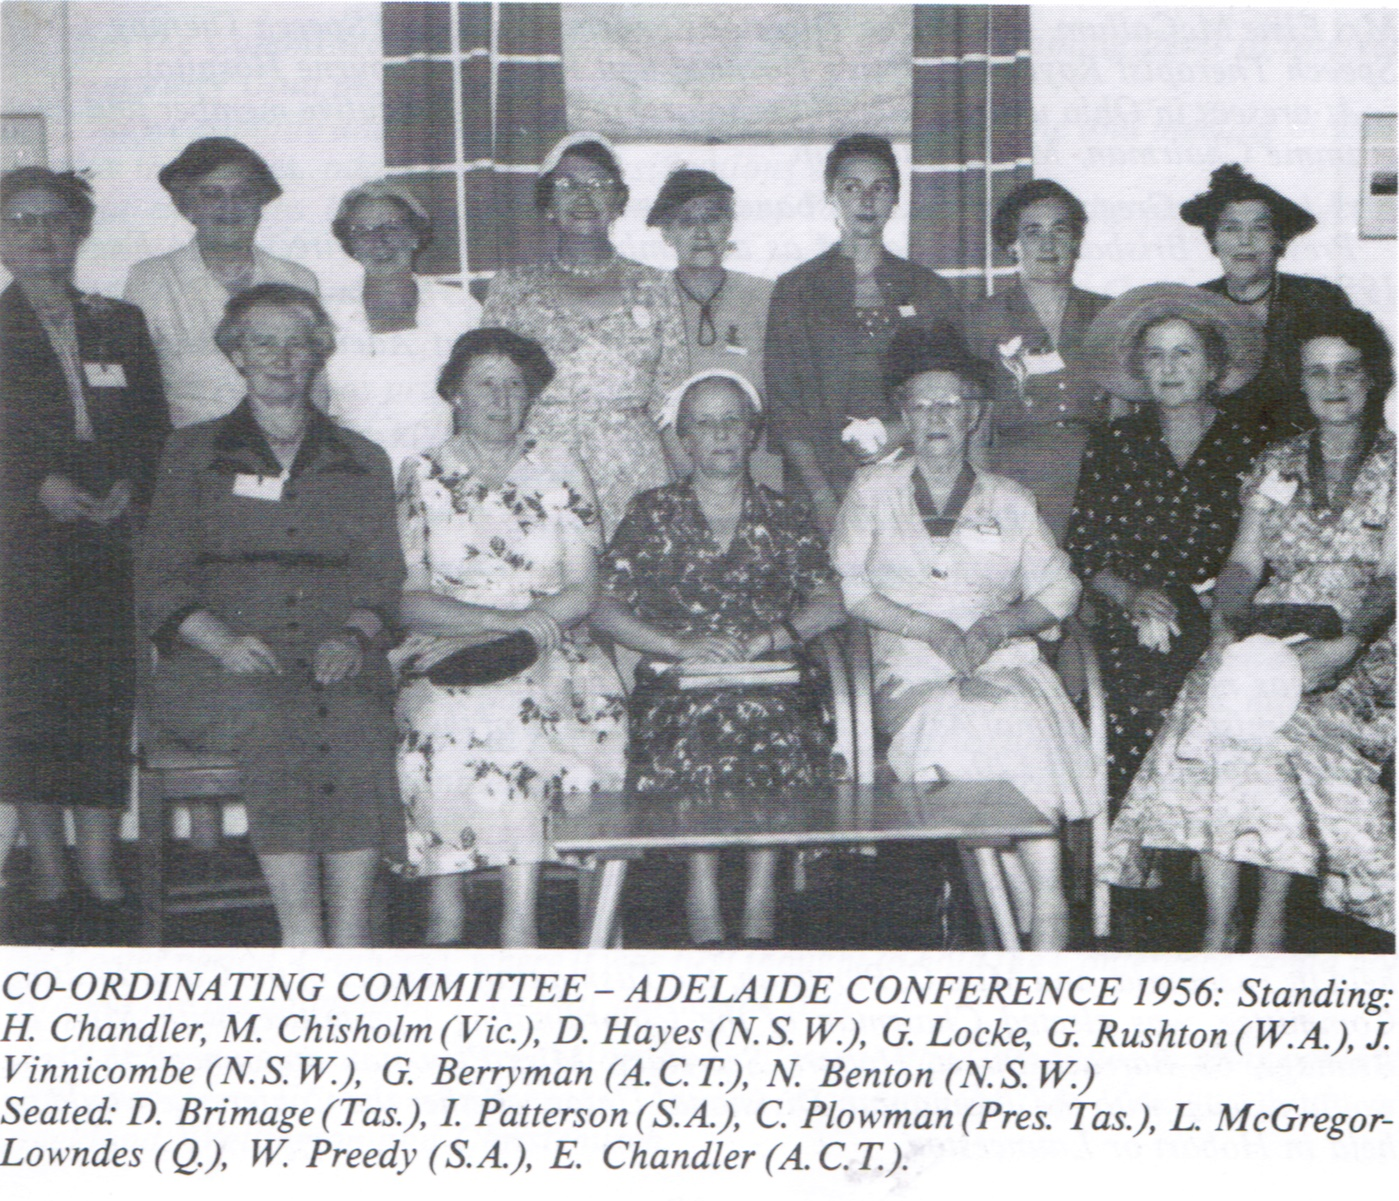 1956 coordinating committee Adelaide Conference